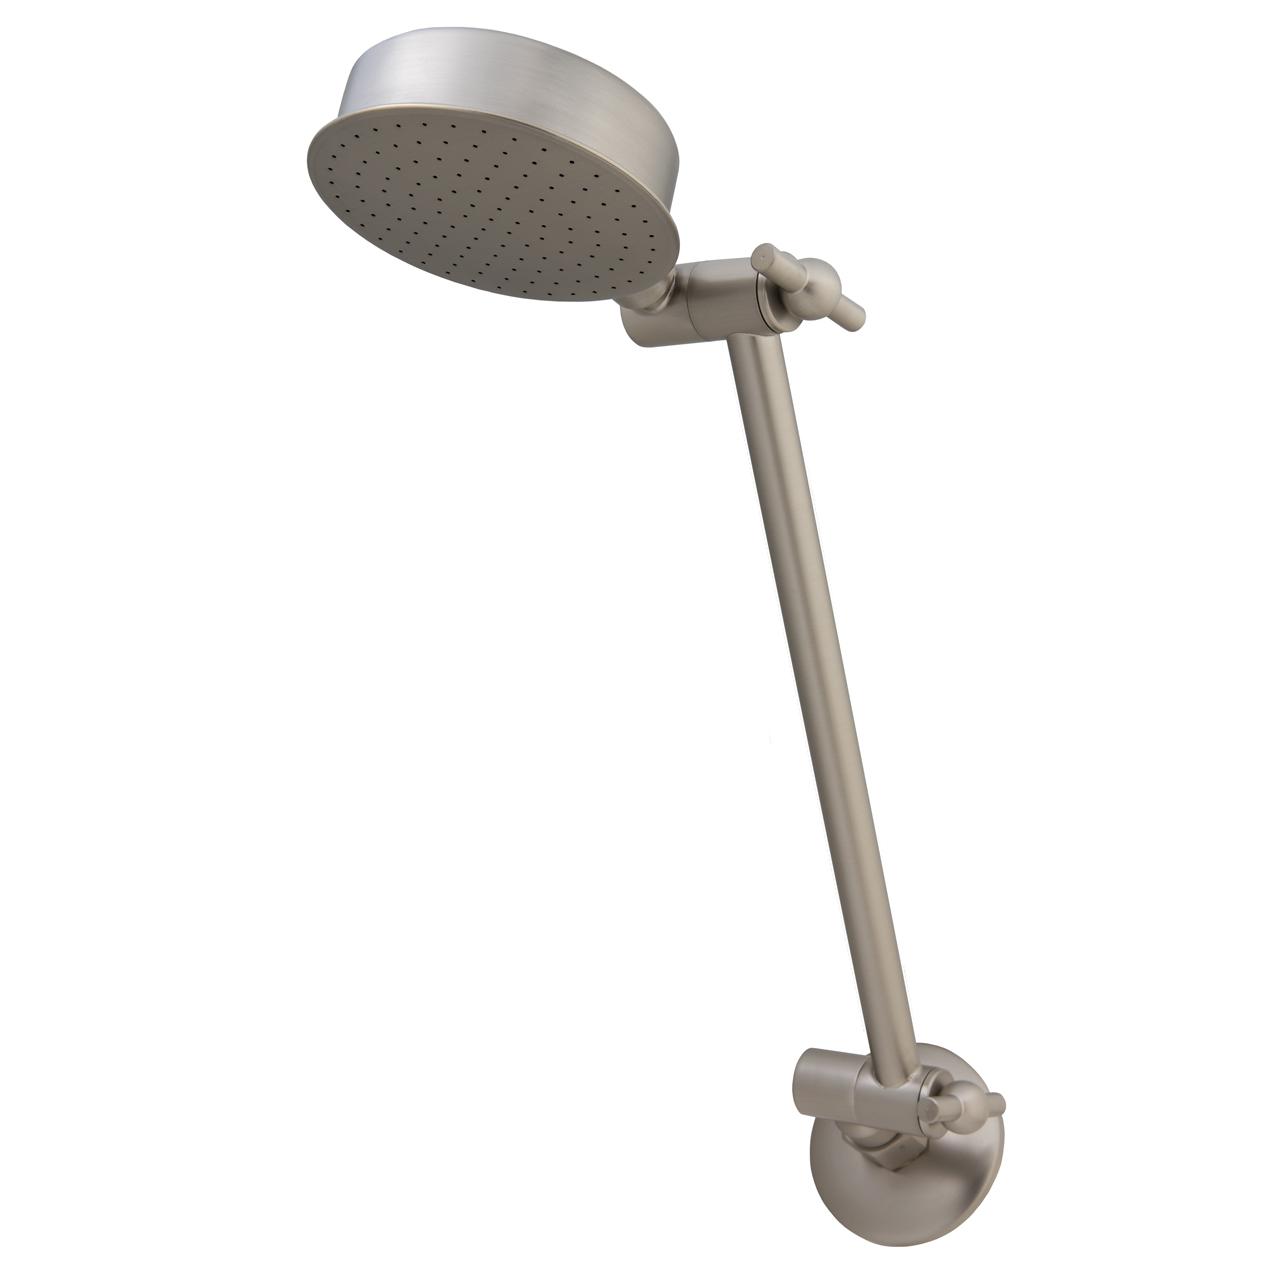 Showermate Series Wonder Shower Head 3 1 2 Brushed Nickel